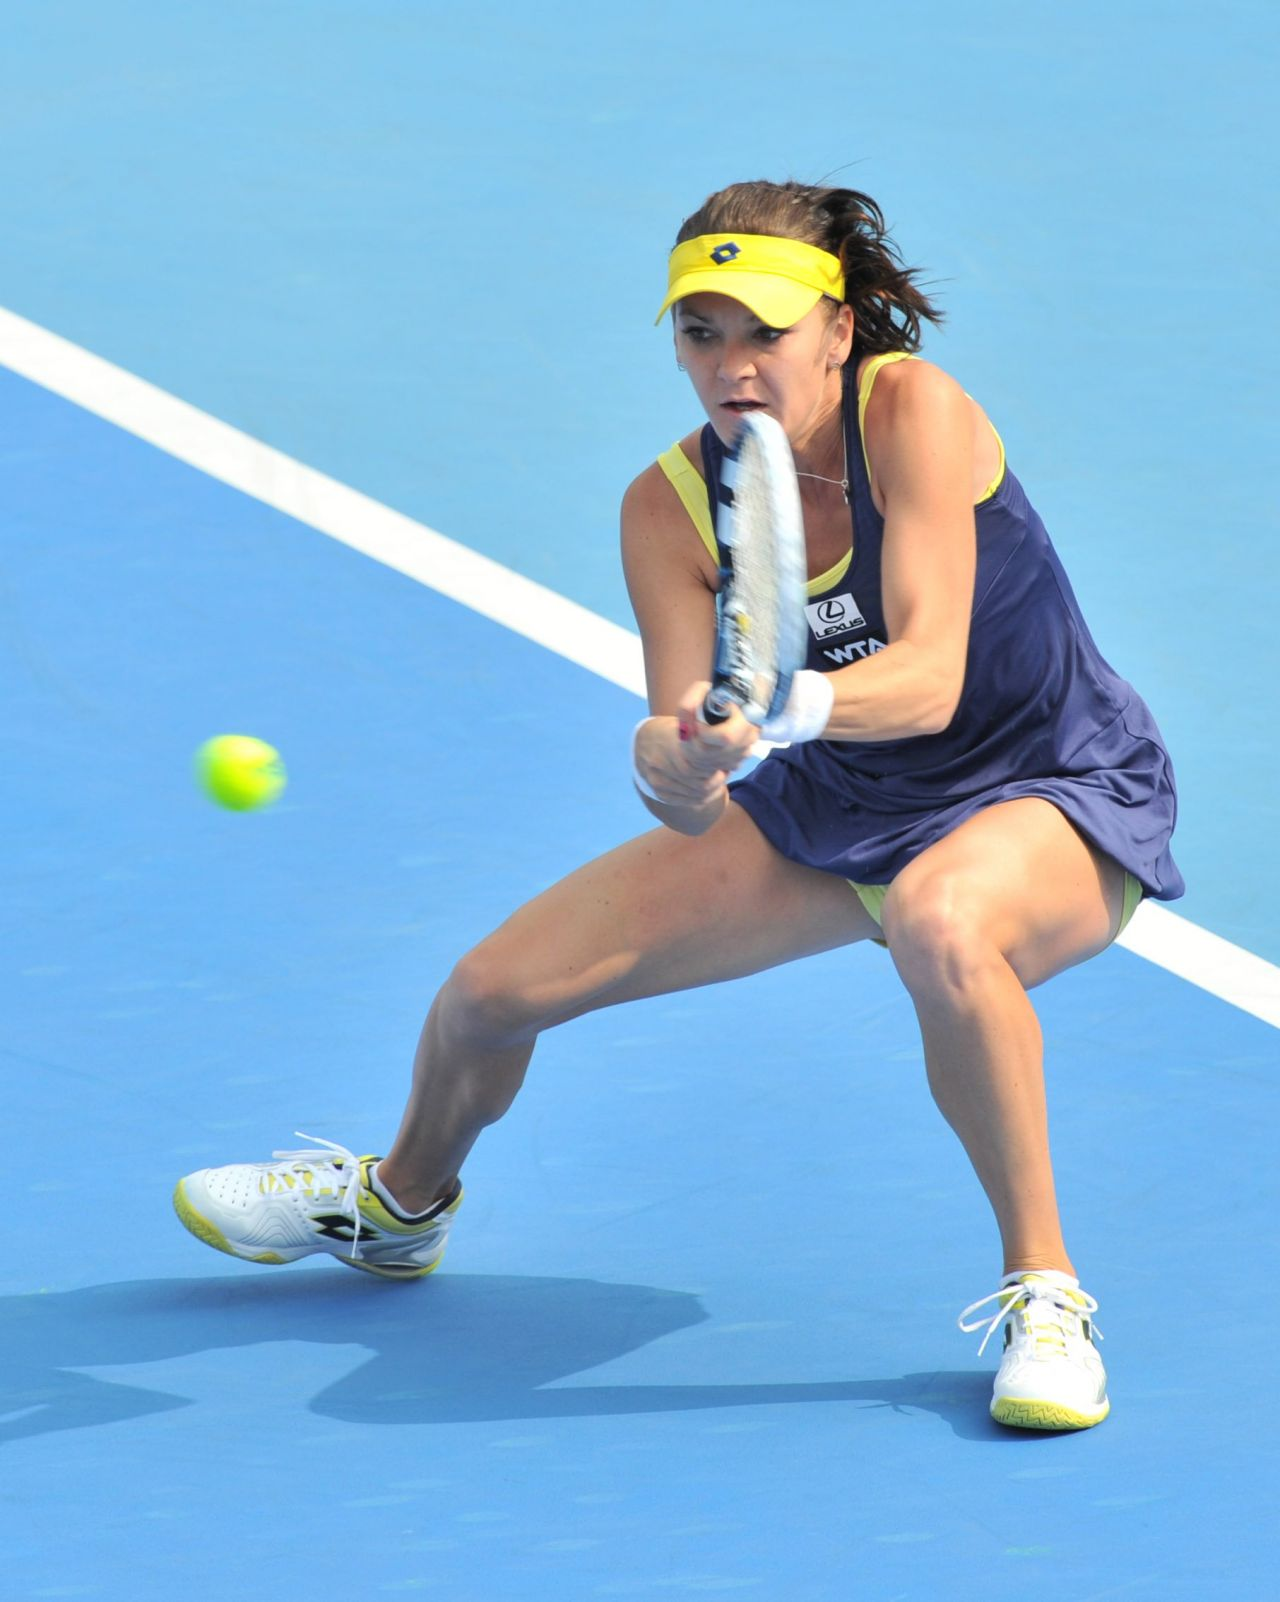 Agnieszka Radwanska - 2014 China Open in Beijing - 2nd round